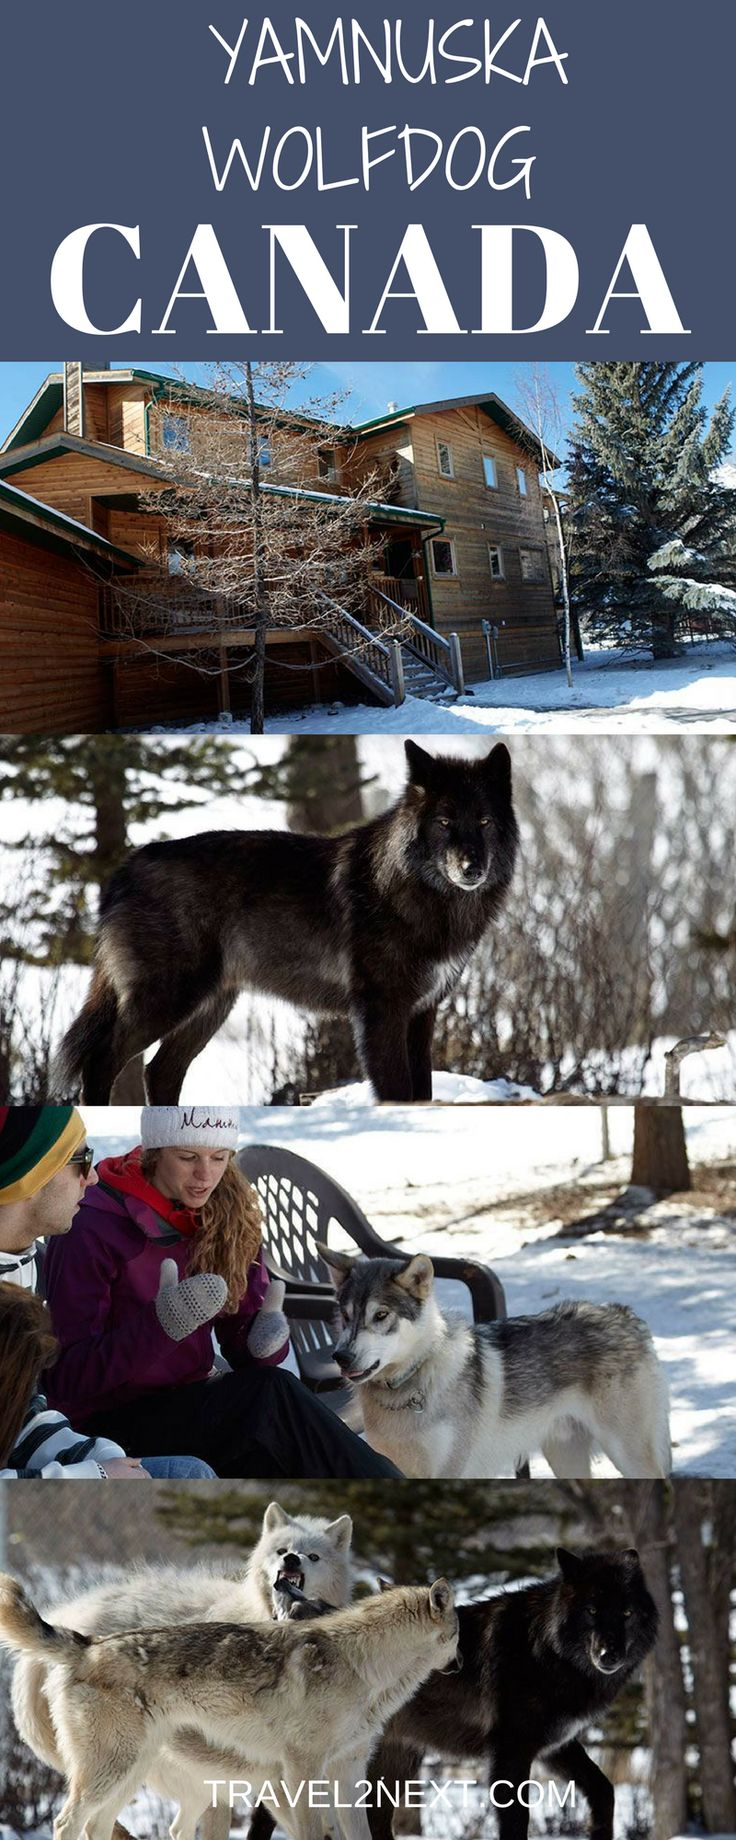 Yamnuska Wolfdog Rescue Video |Ski Canada. One of my more memorable experiences in Canada was a visit to the Yamnuska Wolfdog Rescue in Canmore, Alberta.